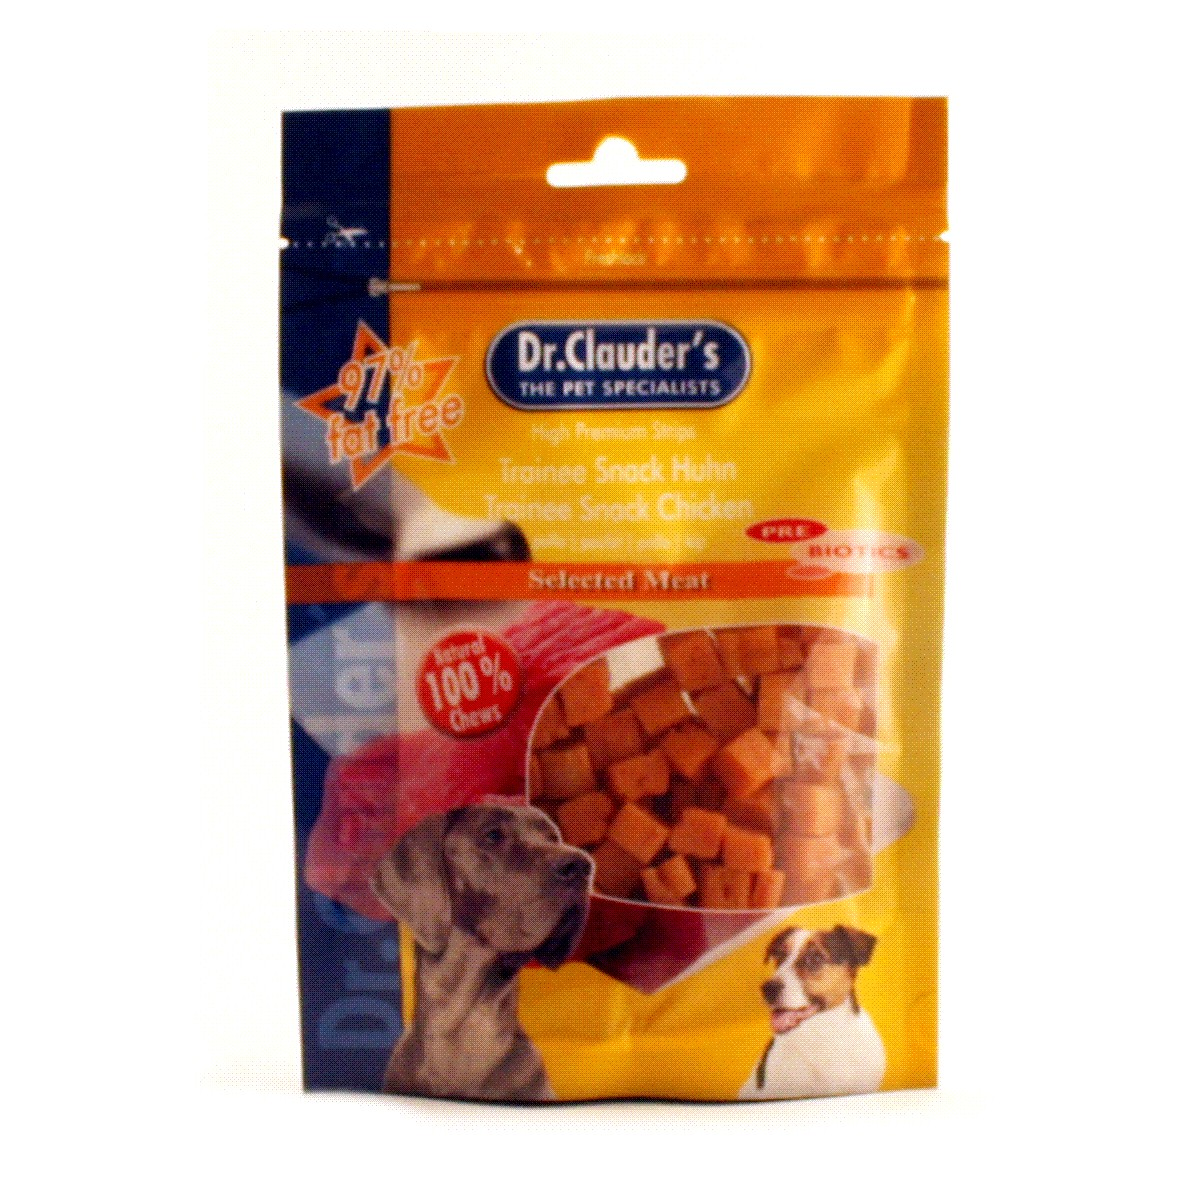 Dr. Clauders Trainee Snack Huhn